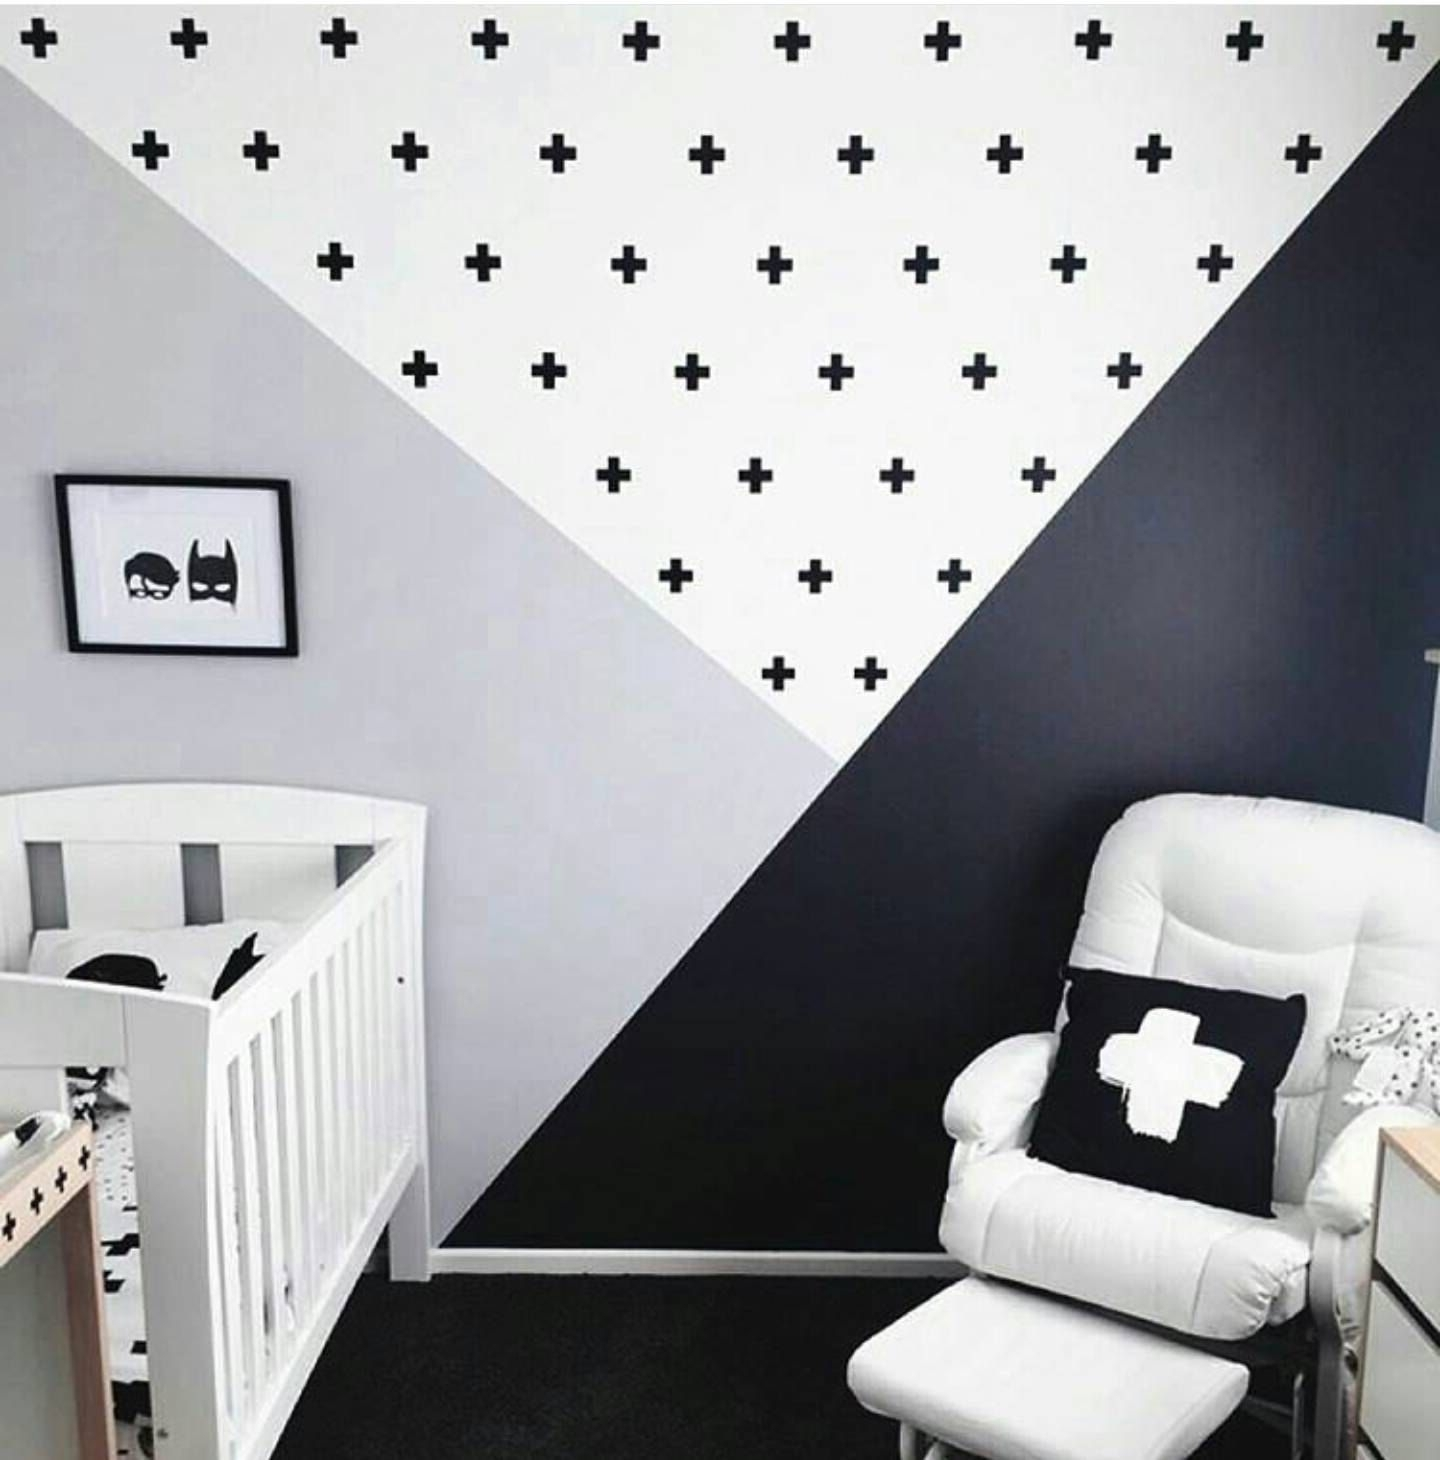 2017 Swiss Cross Wall Decals, Plus Sign Wall Stickers, Geometric Accent Pertaining To Geometric Shapes Wall Accents (Gallery 15 of 15)